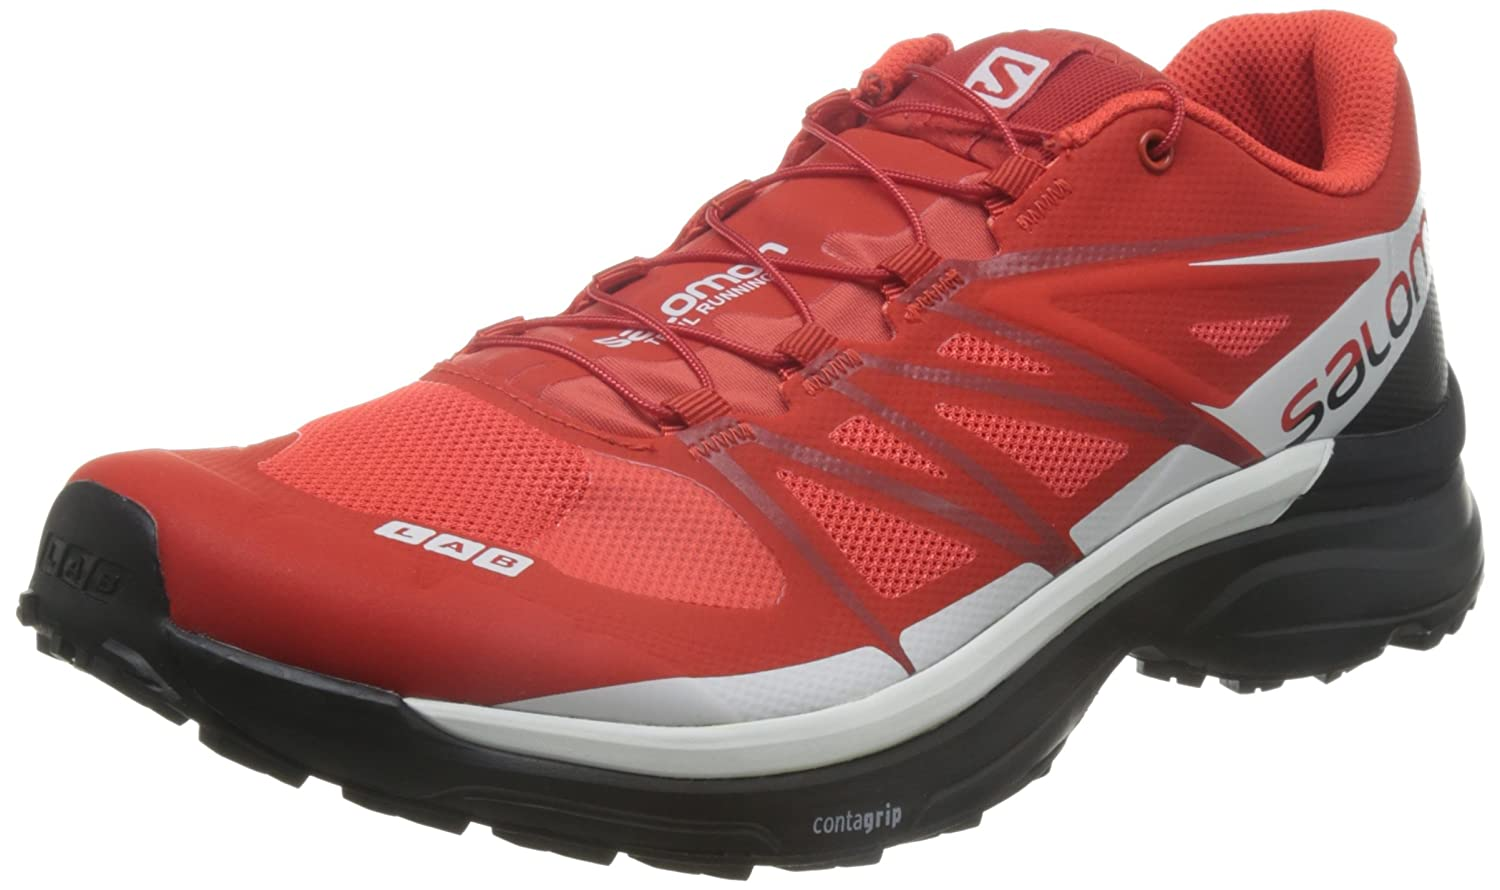 Salomon L39121500, Zapatillas de Senderismo Unisex Adulto 44 2/3 EU|Rojo (Racing Red / Black / White)